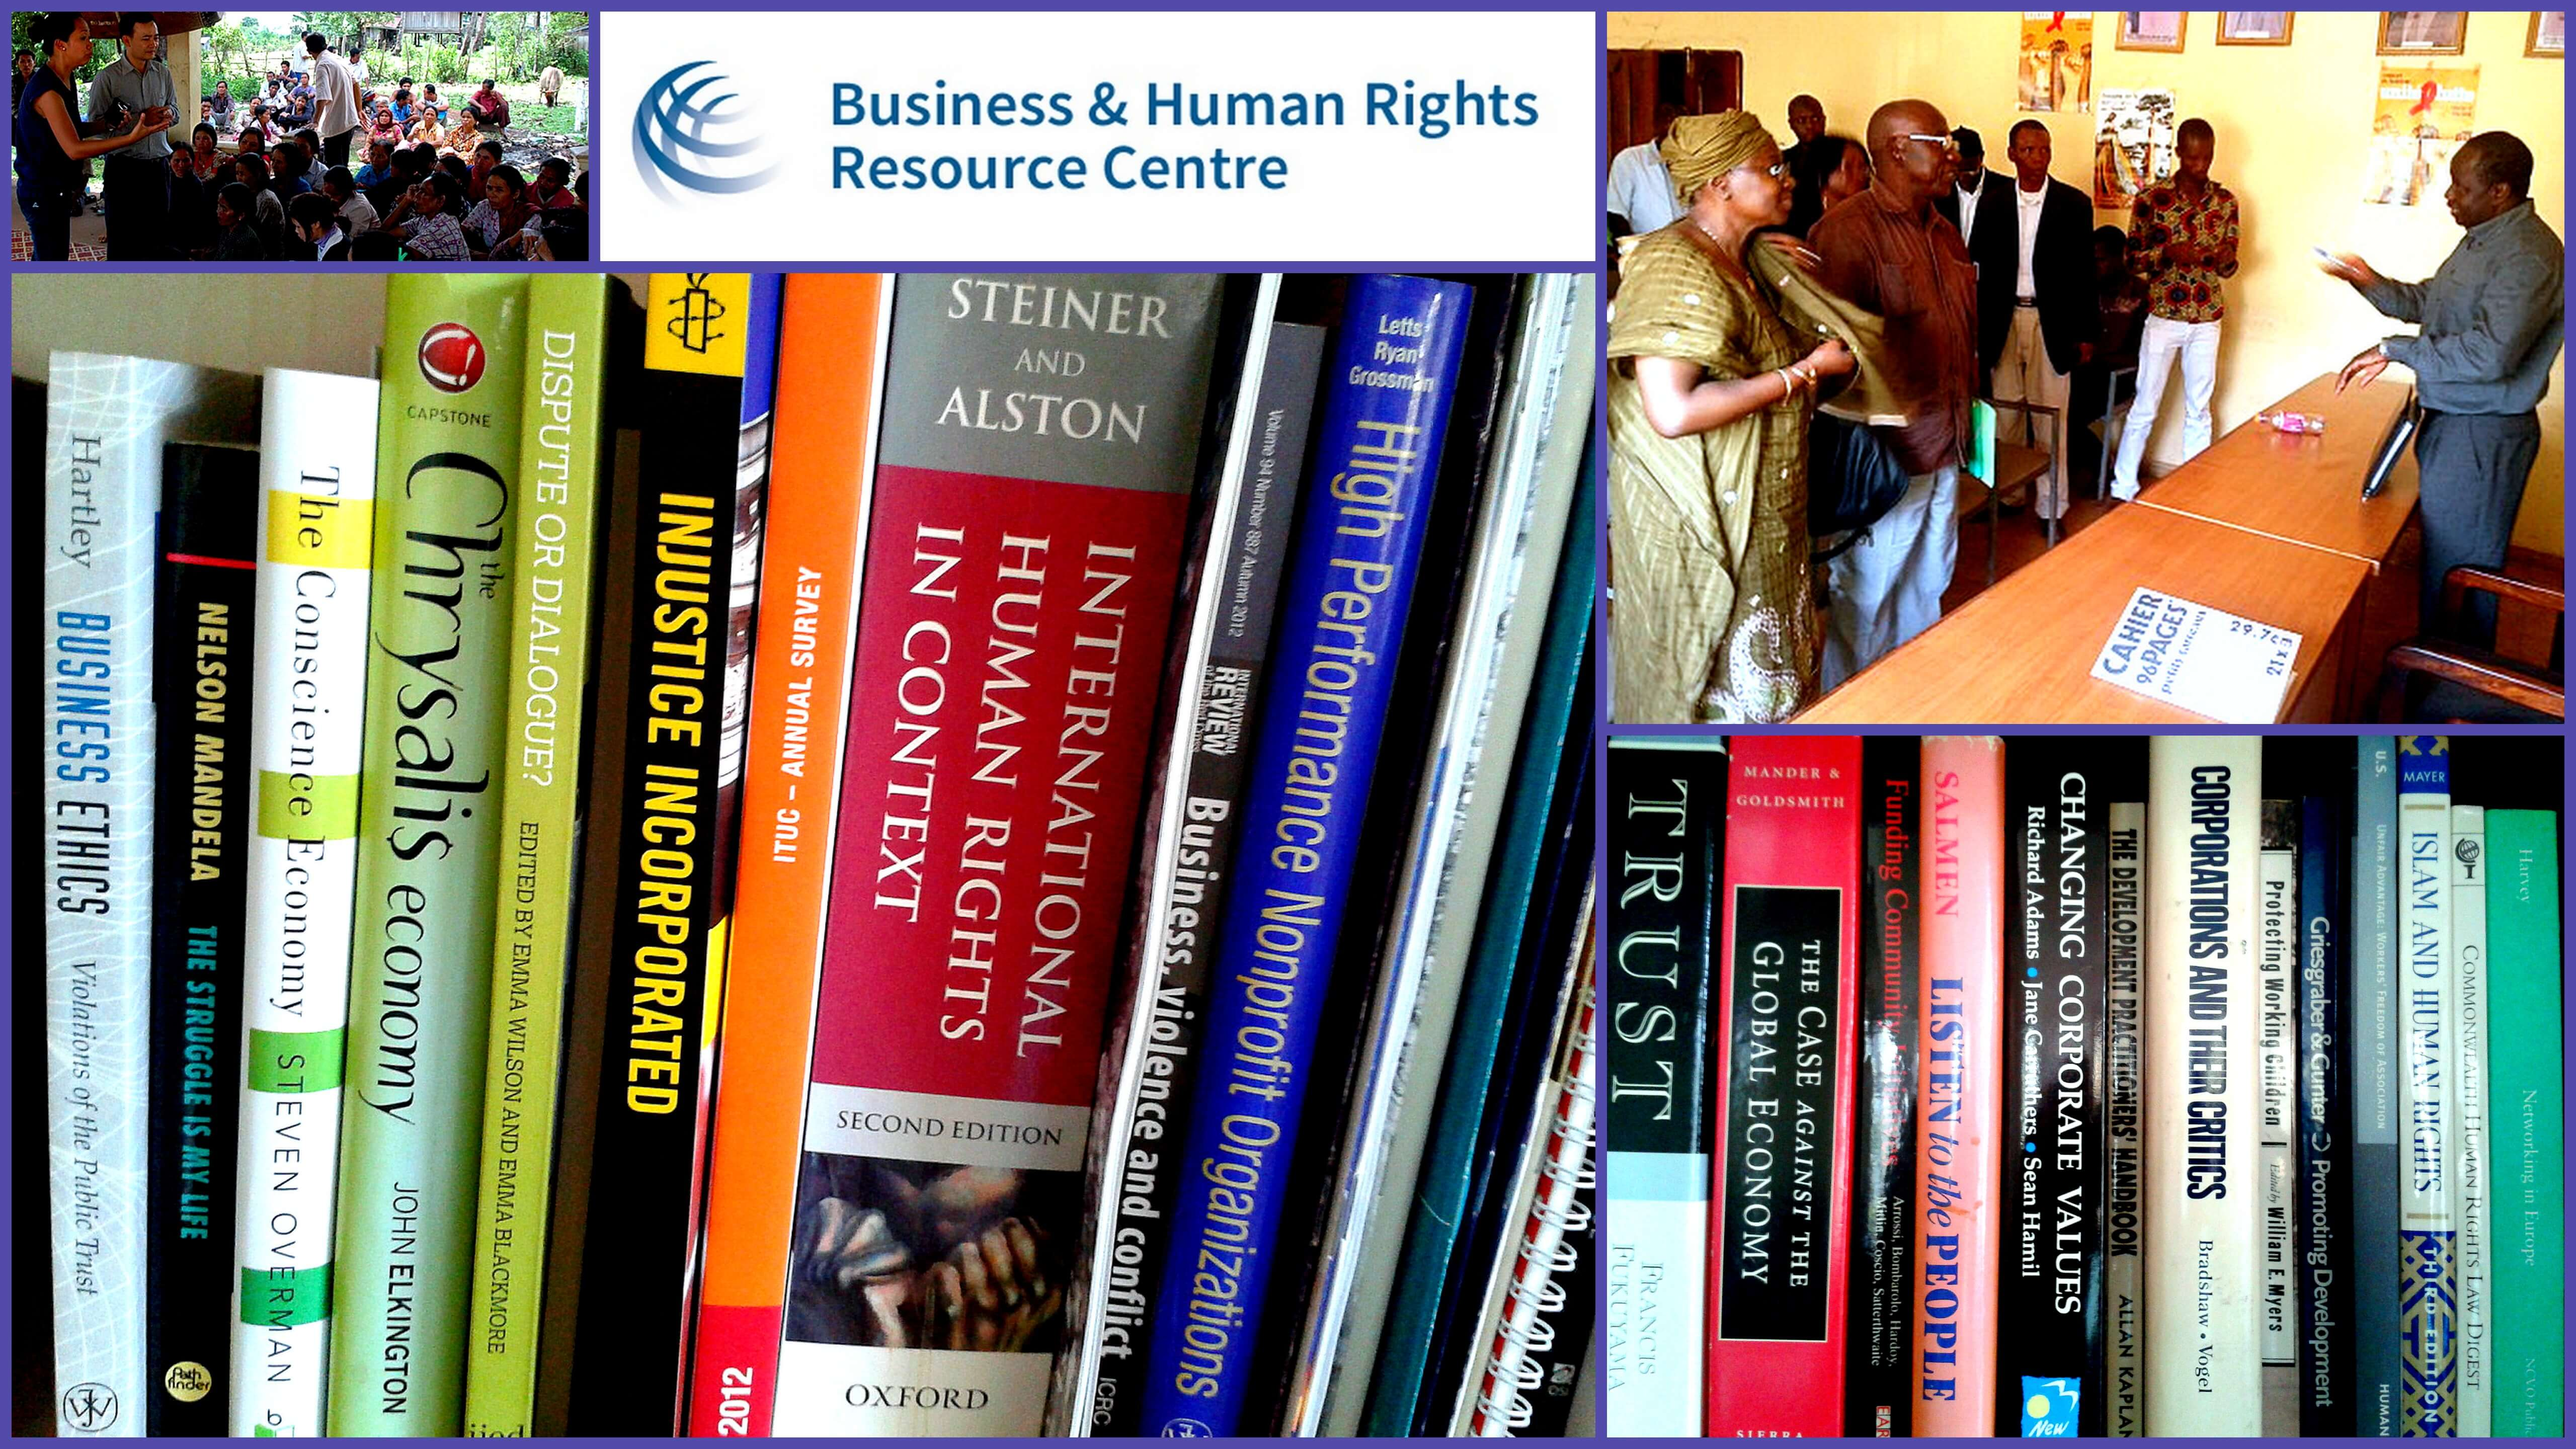 National Pro Bono Week – Advancing Human Rights In and Through Business